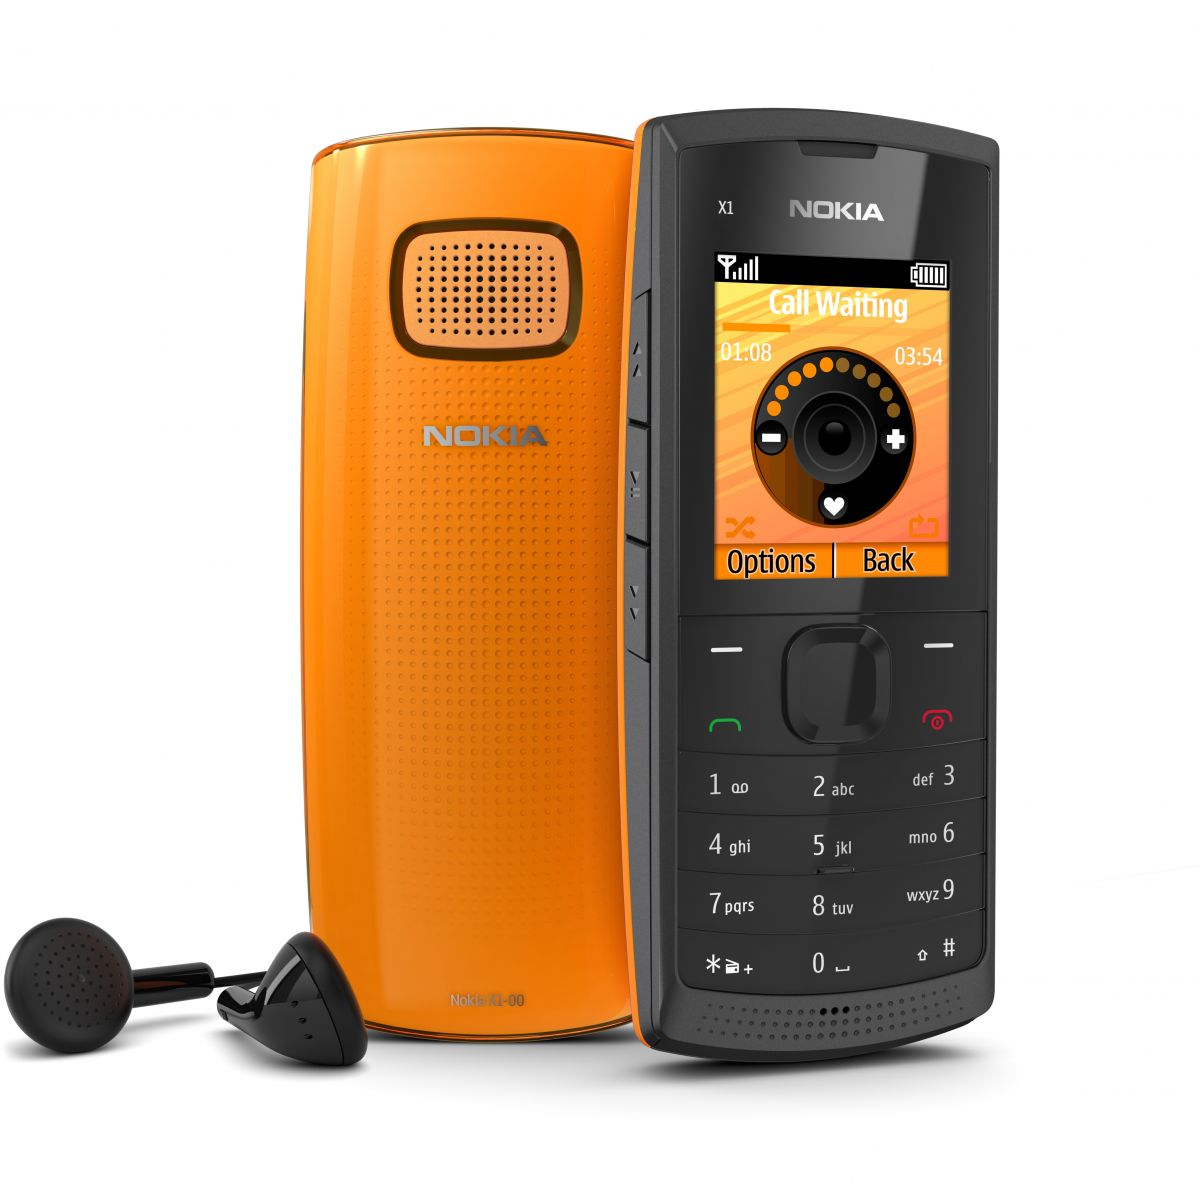 The best mobiles the best price nokia x1 01 orange buy for Orange mobel